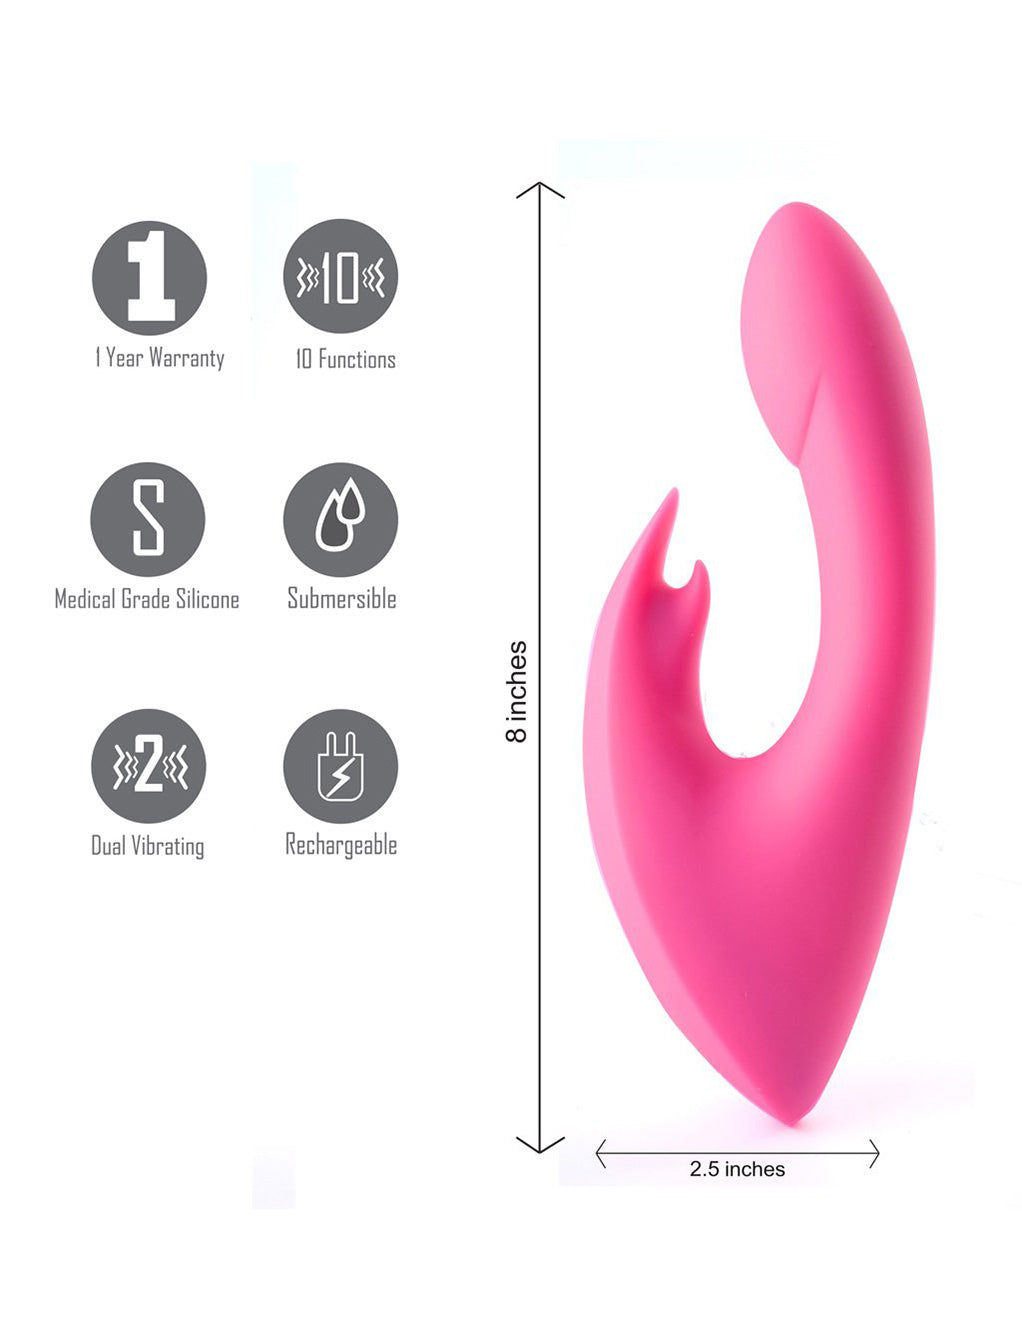 Maia Leah USB Rechargeable Silicone 10-Function Rabbit Vibrator features